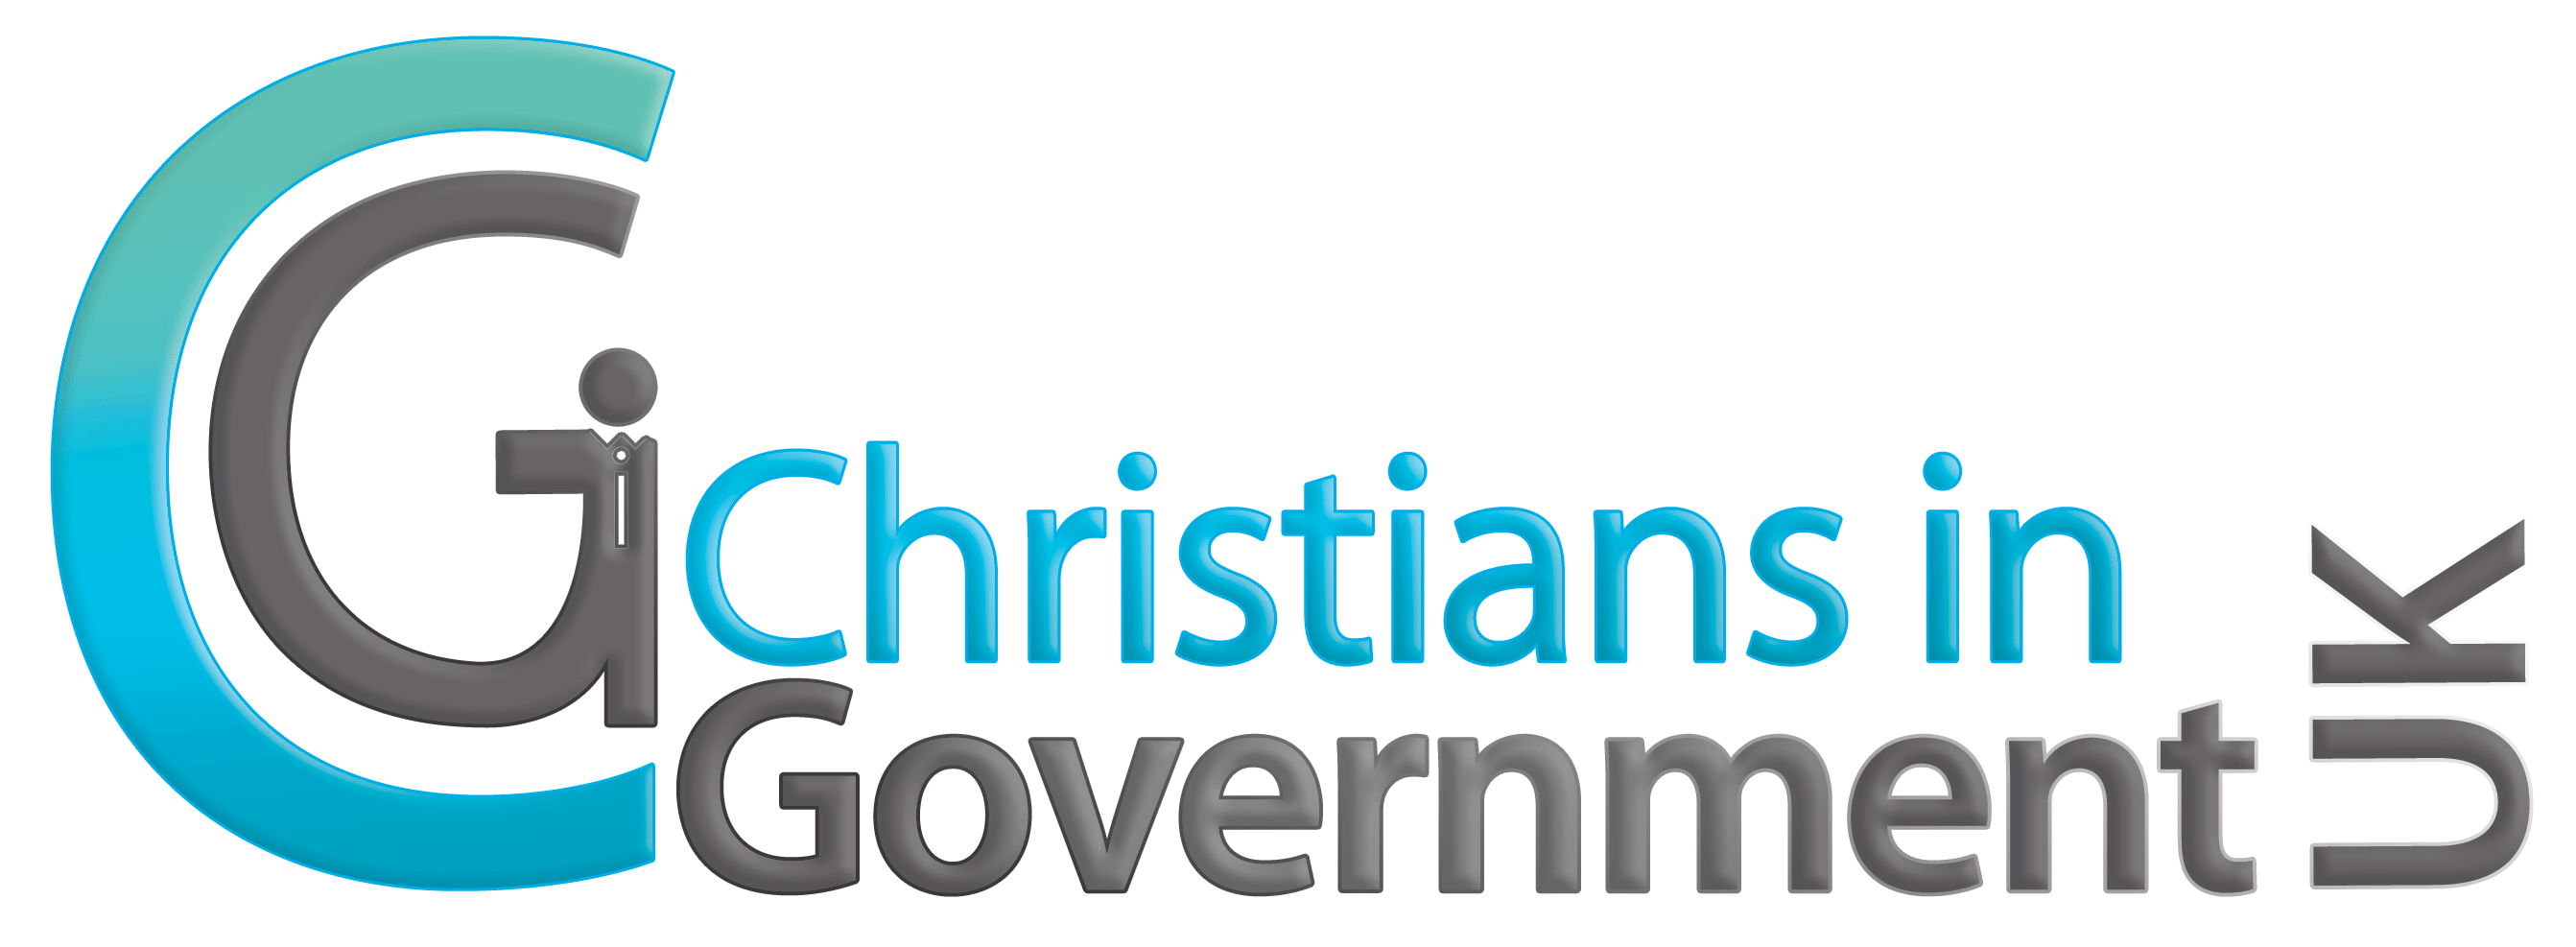 christiansingovernment.org.uk